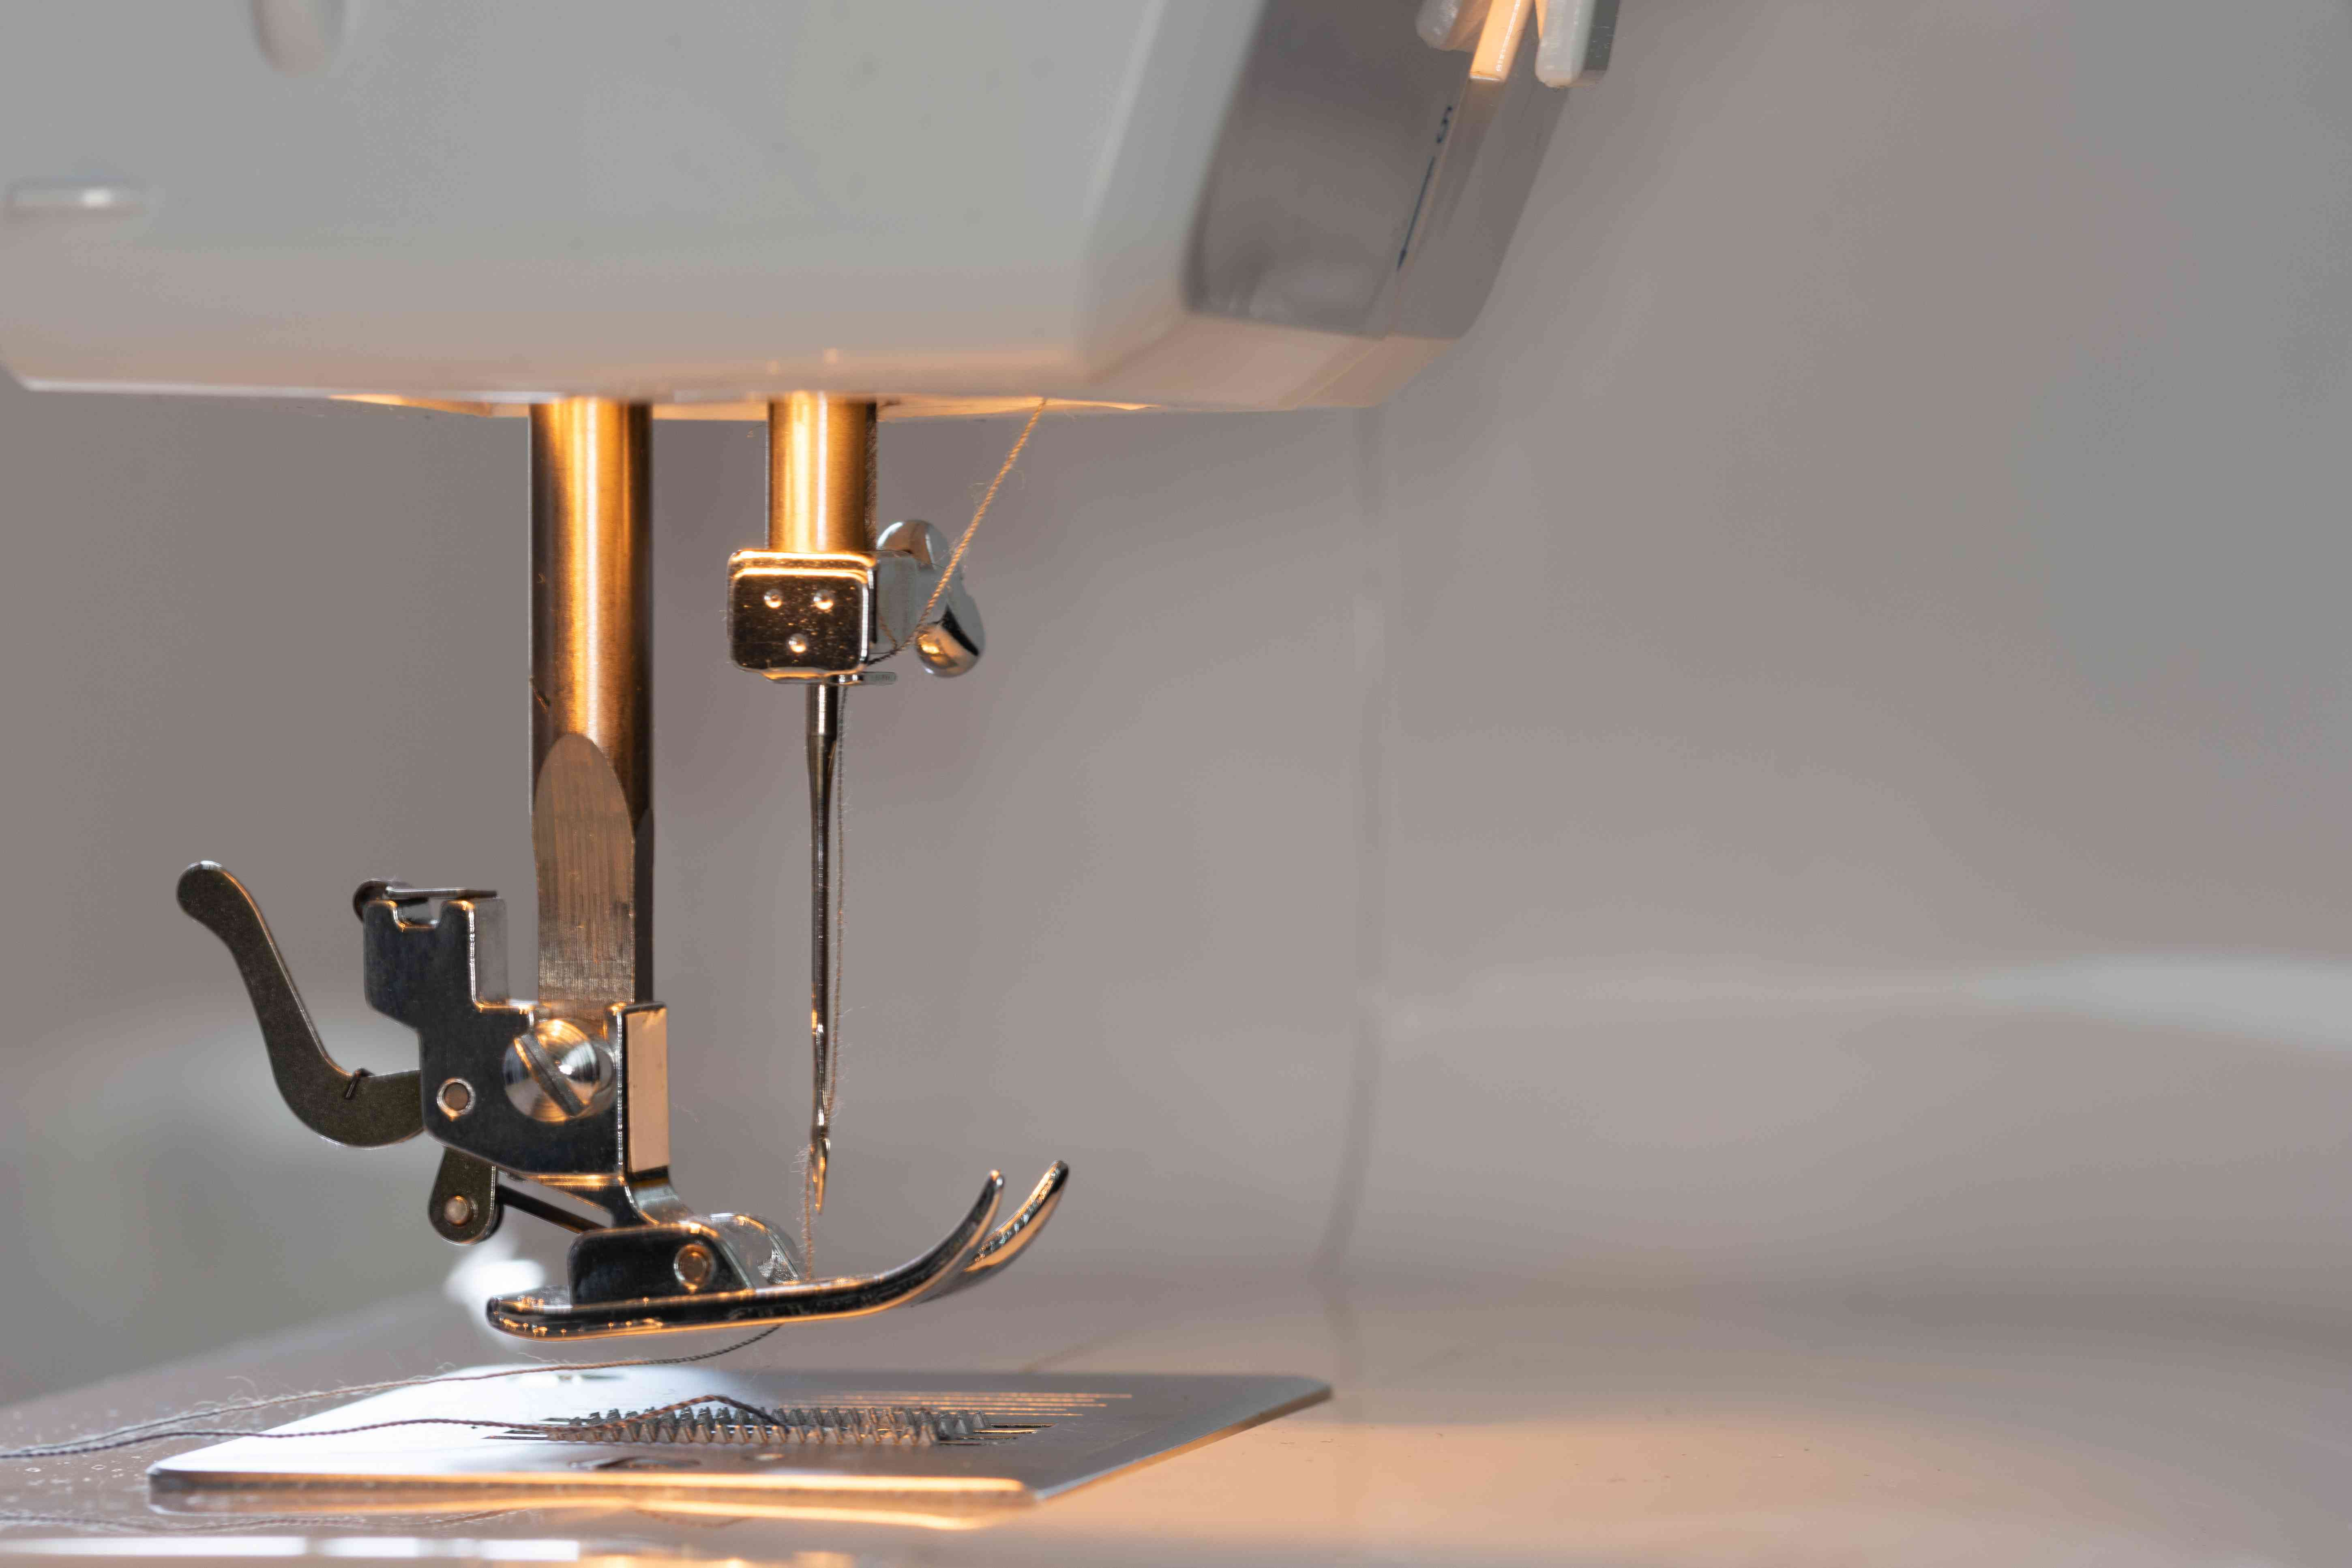 Detailed view of a sewing machine illuminated directly near the mechanics